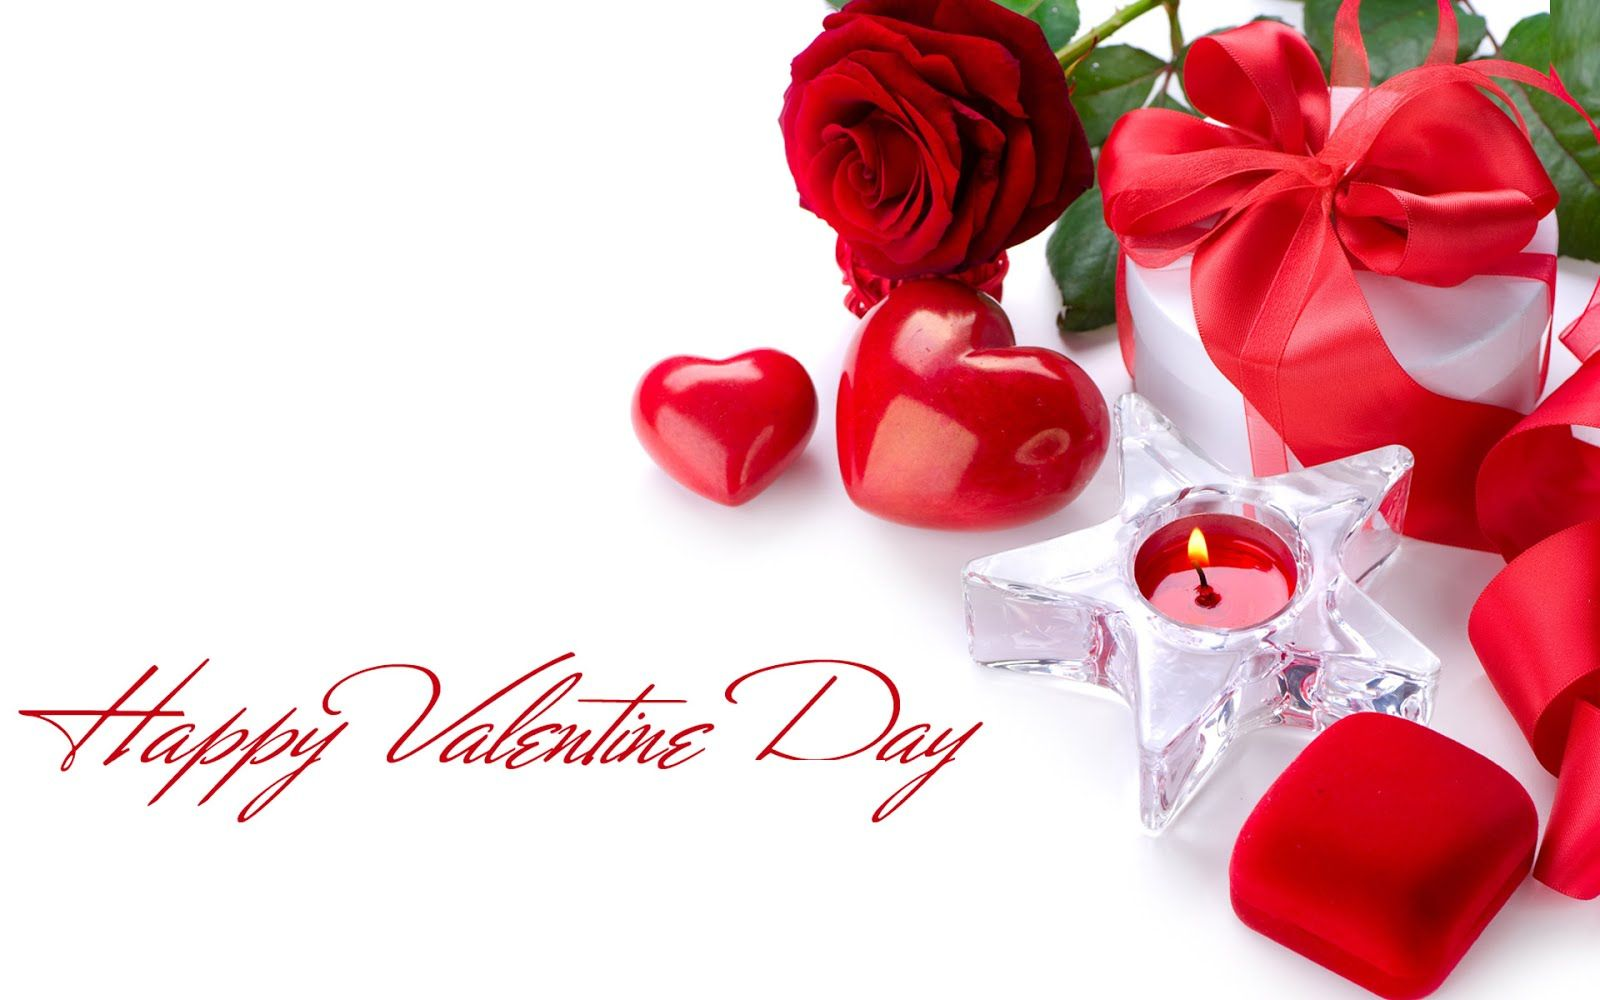 valentine wishes for loverhappy valentines day lovehappy valentines lovehappy valentines day to the love of my lifehappy valentines day my love images